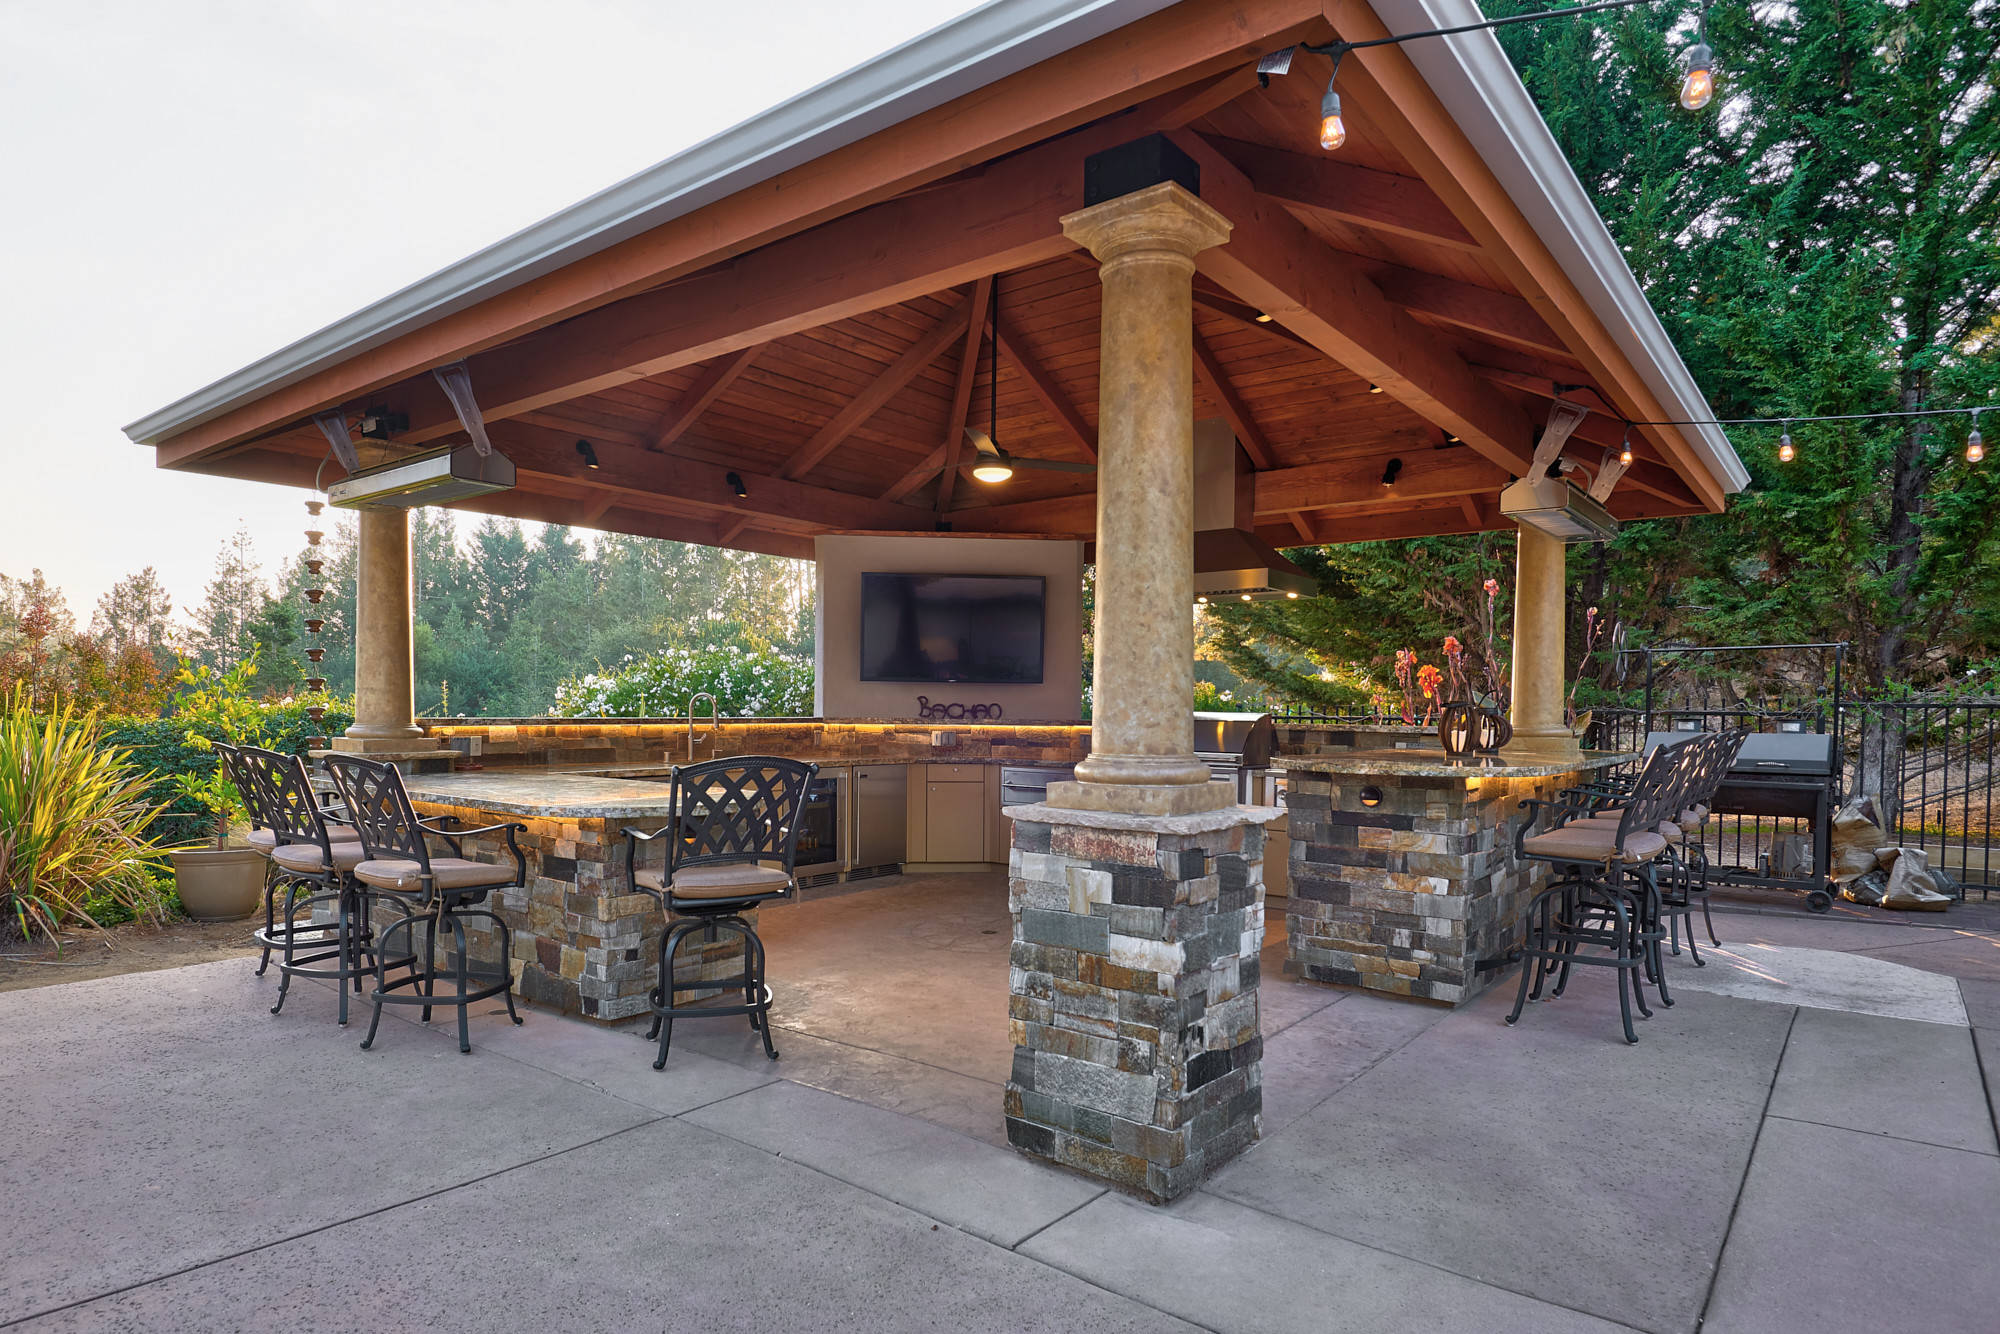 75 Beautiful Outdoor Kitchen Design With A Gazebo Pictures Ideas November 2020 Houzz